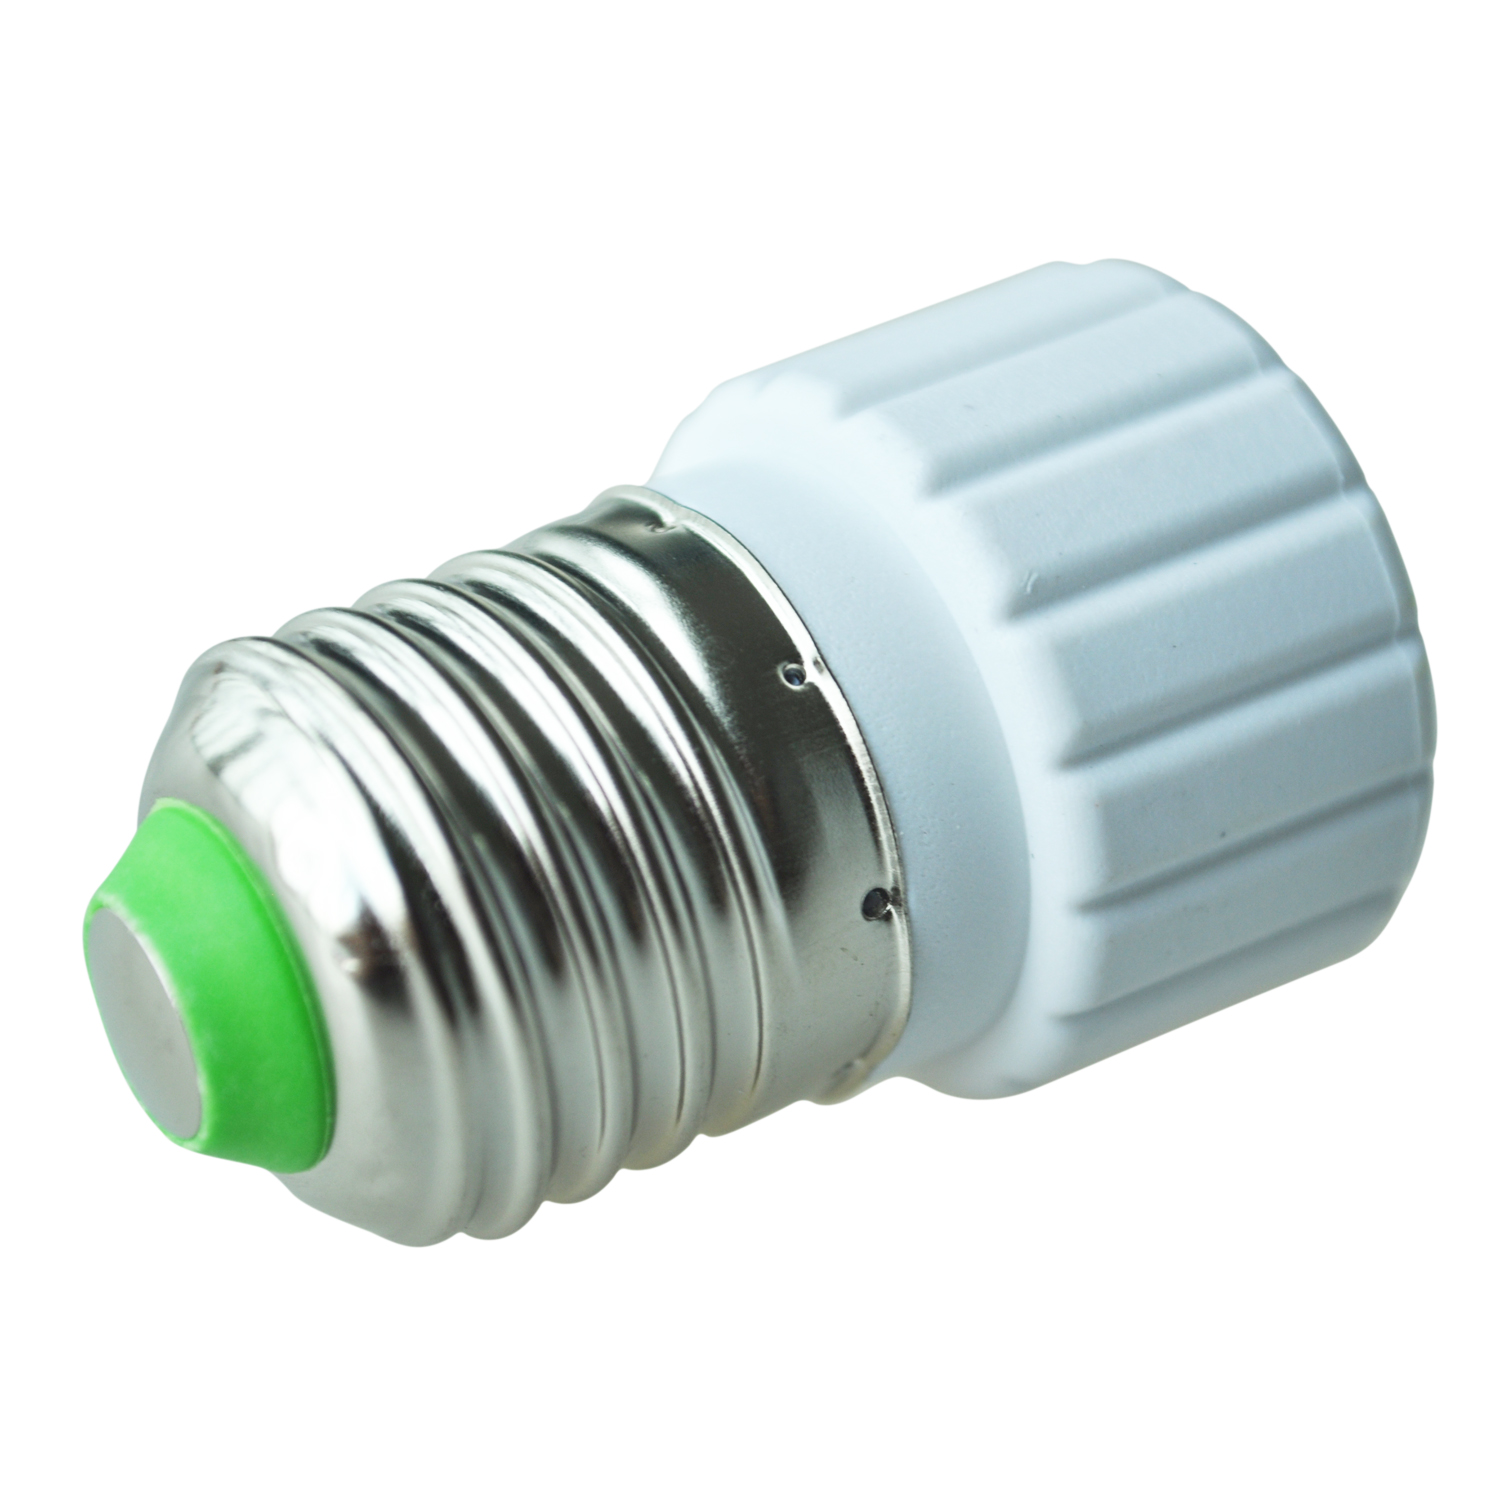 E27 To Gu10 Extend Base Led Light Bulb Lamp Adapter Converter Screw Socket Hp Ebay